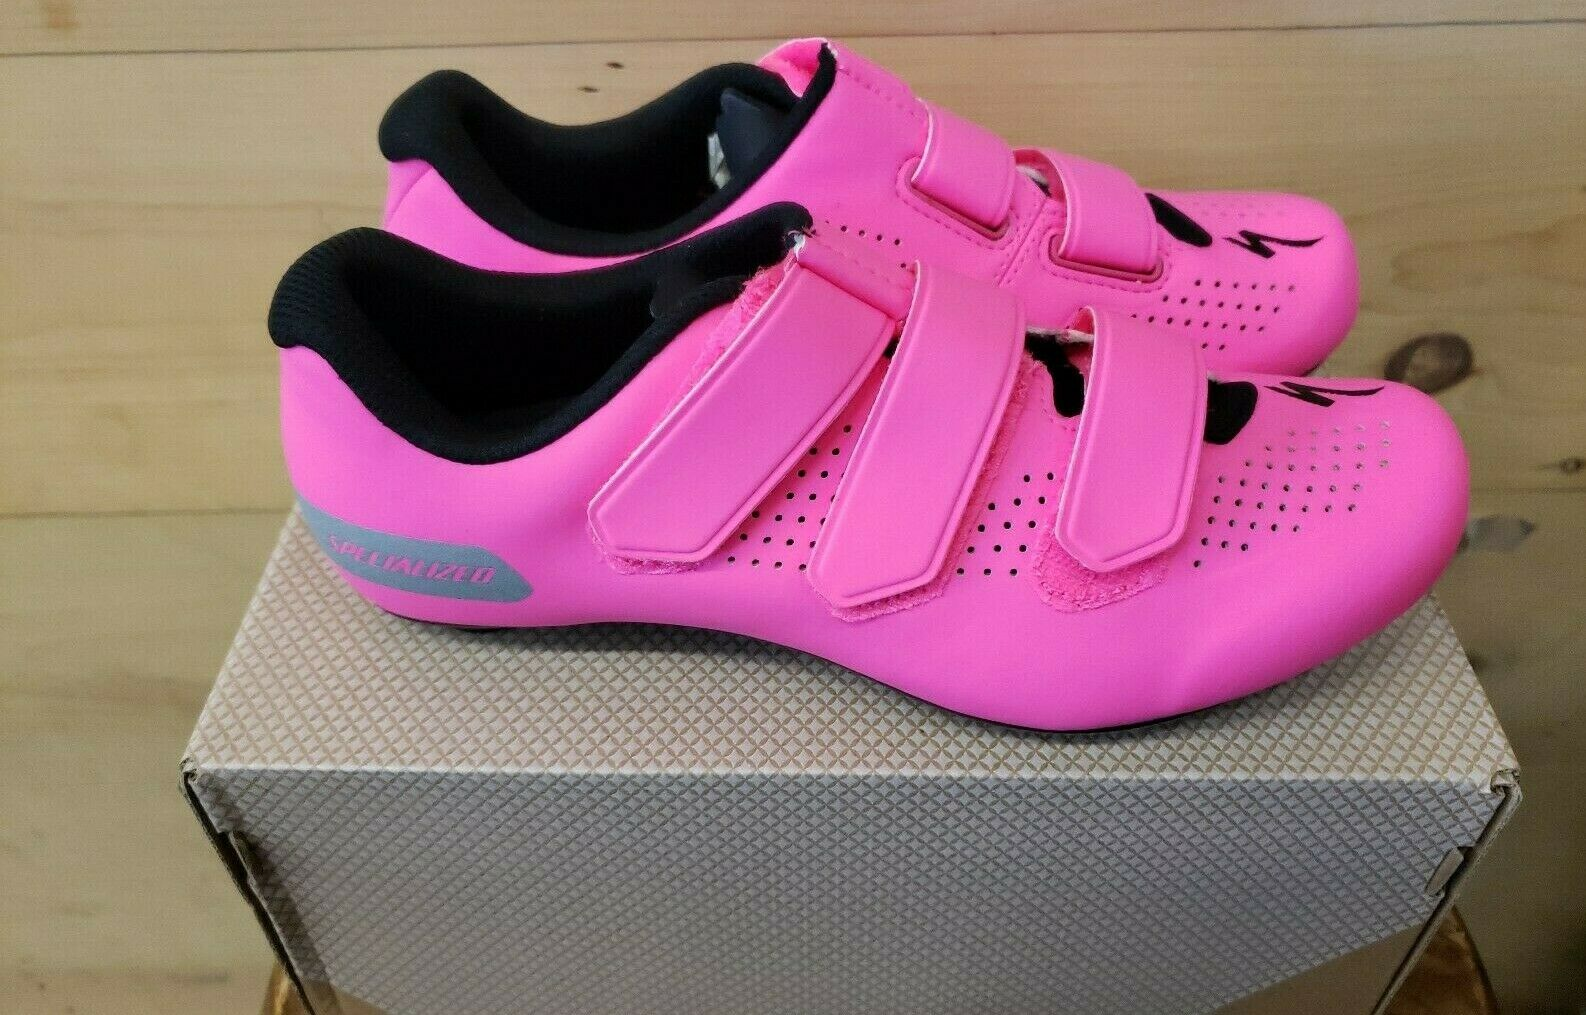 New In  Box Specialized Torch 1.0 Road Women's Cycling shoes Size 37   6.5 Pink  at the lowest price